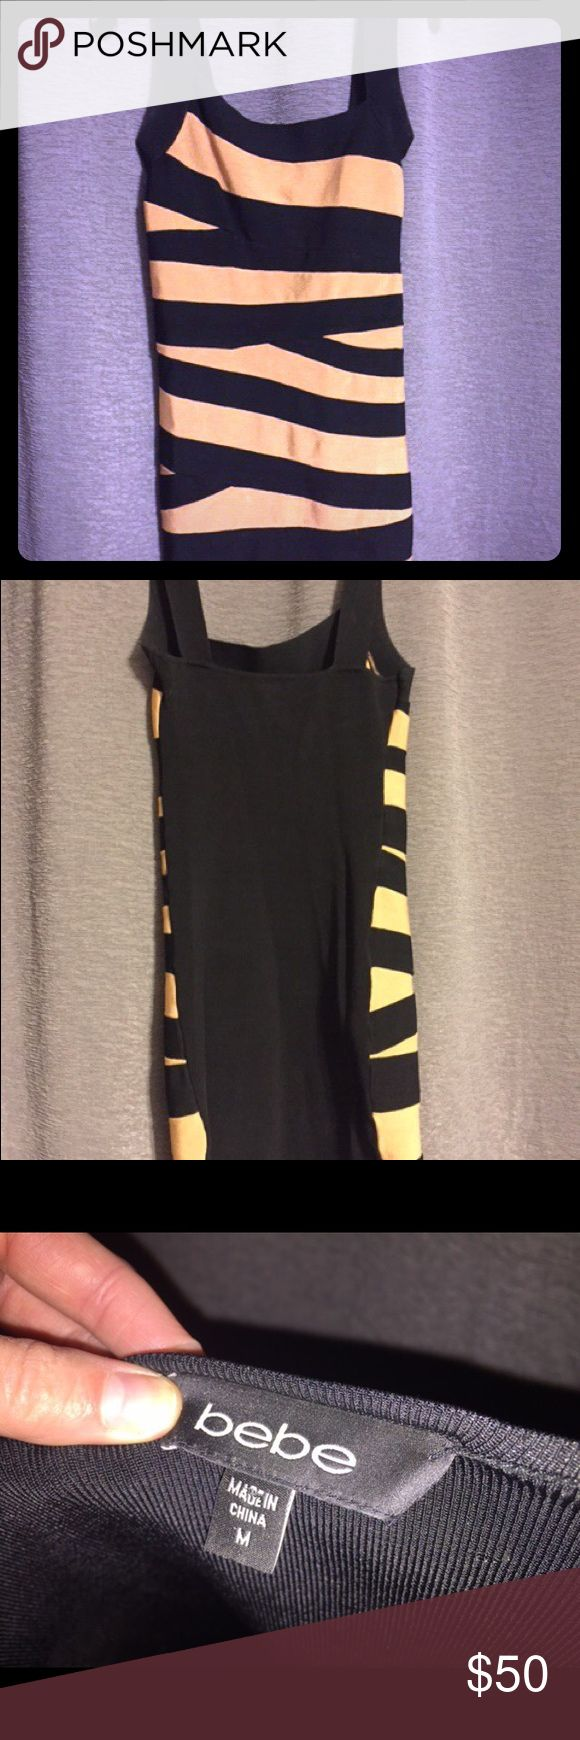 bebe Black and Gold Bandage Dress This dress is a blast to wear and looking for a new home. EUC all black back bandage dress. bebe Dresses Mini